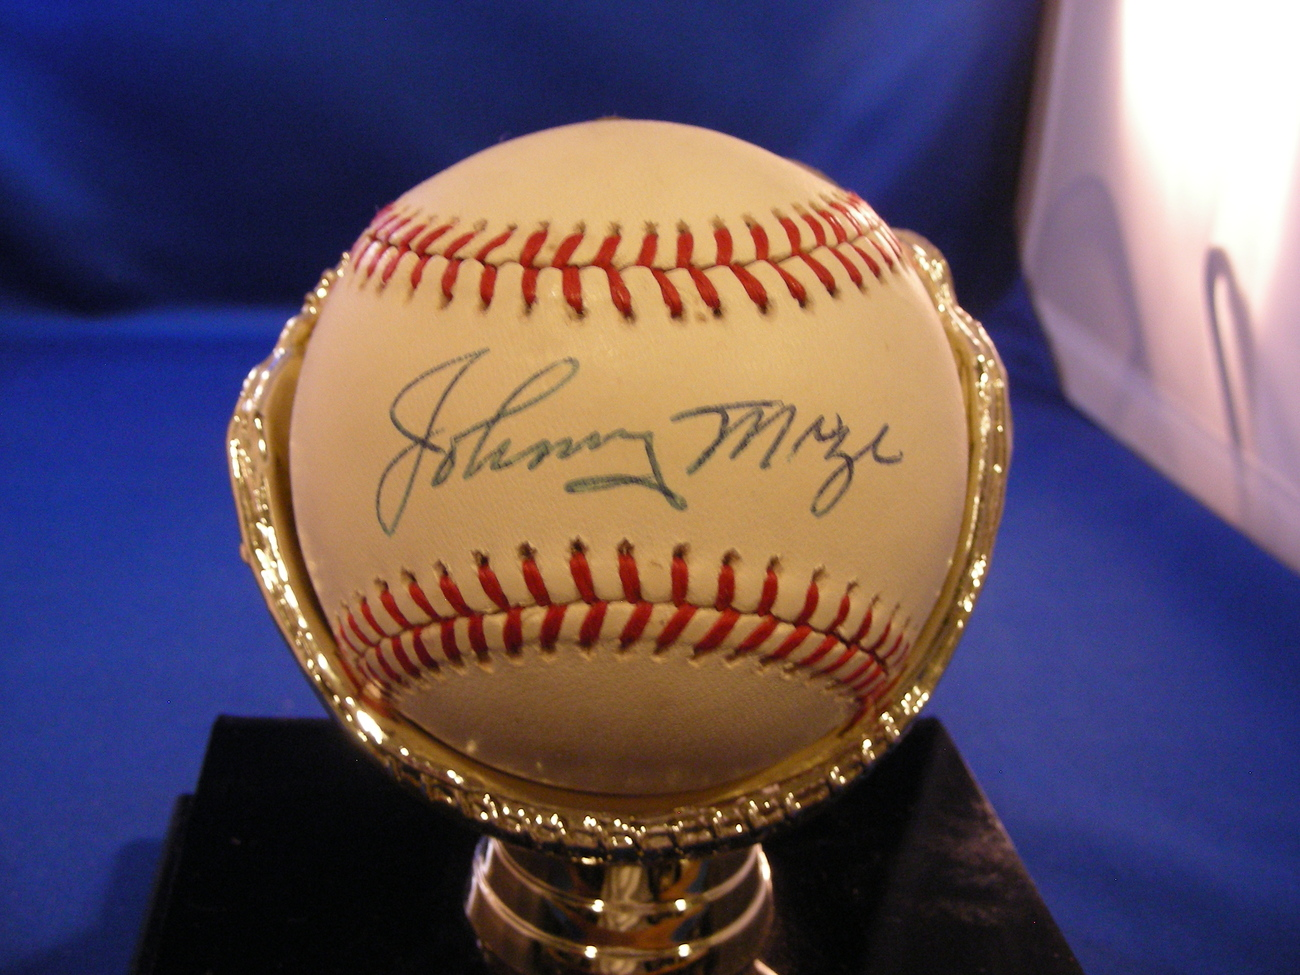 JOHNNY MIZE HOF 1981 5X WSC YANKEES SIGNED BASEBALL PSA/DNA